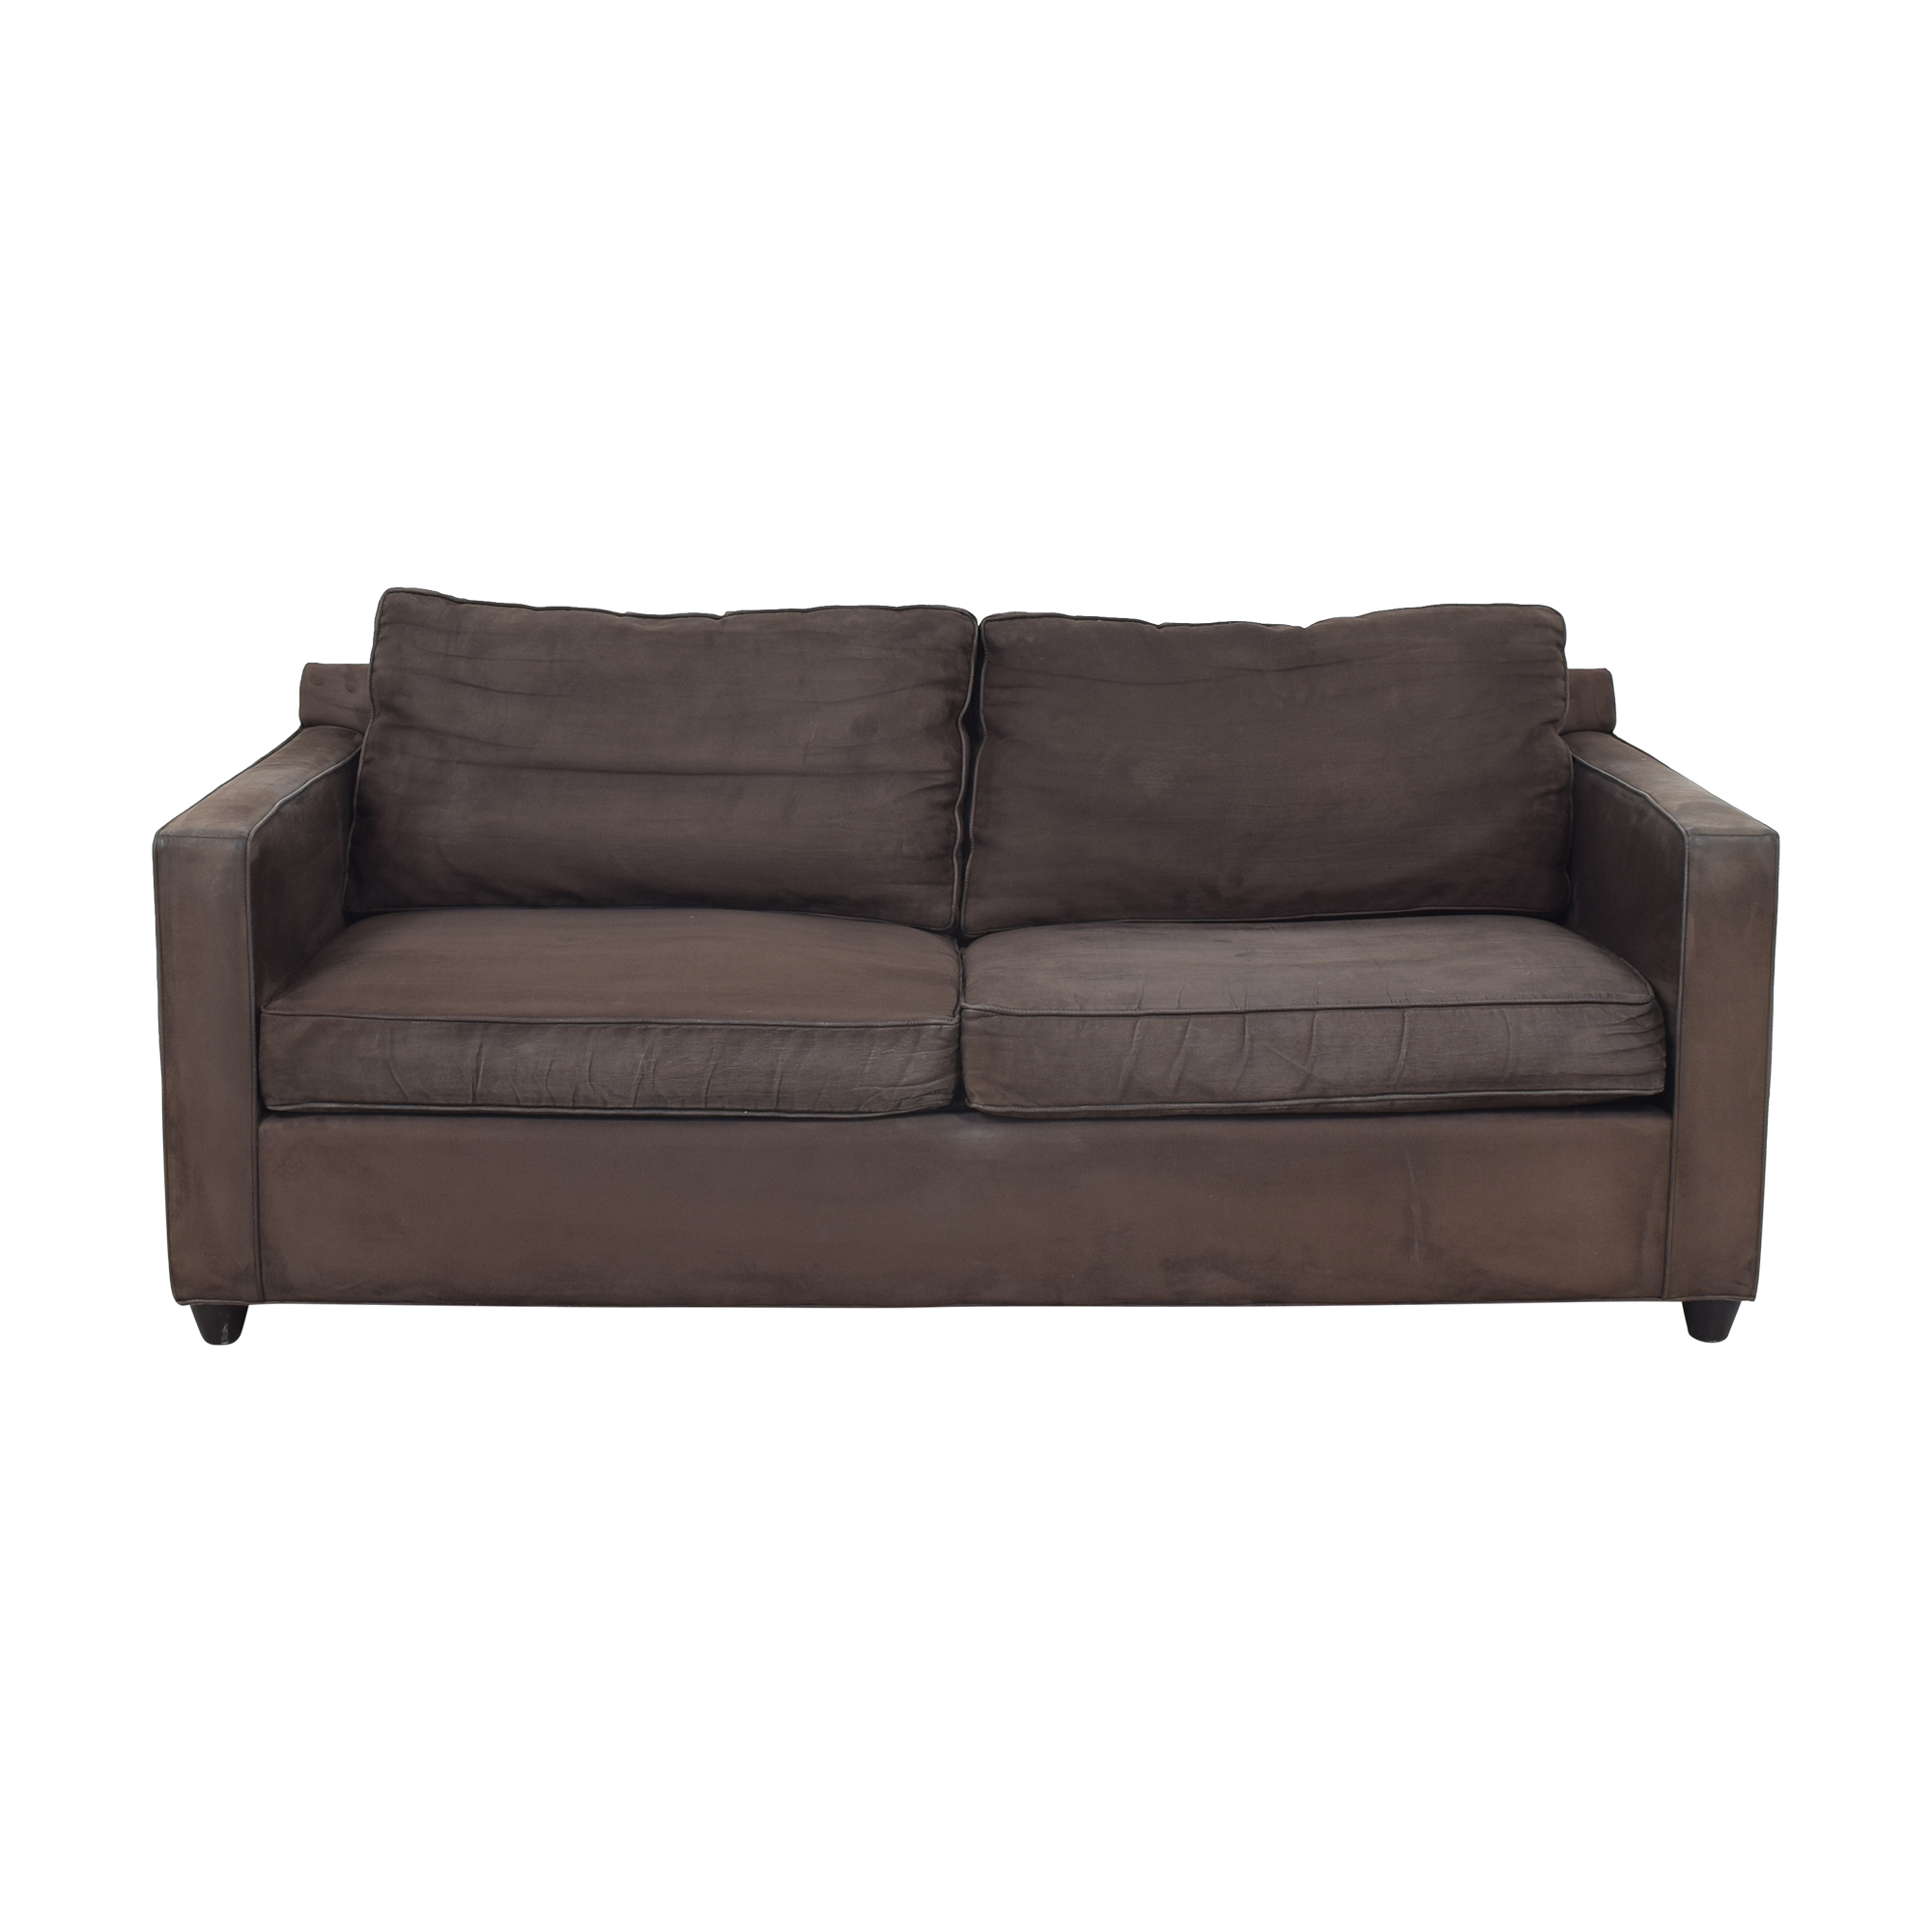 Crate & Barrel Crate & Barrel Troy Sofa nj